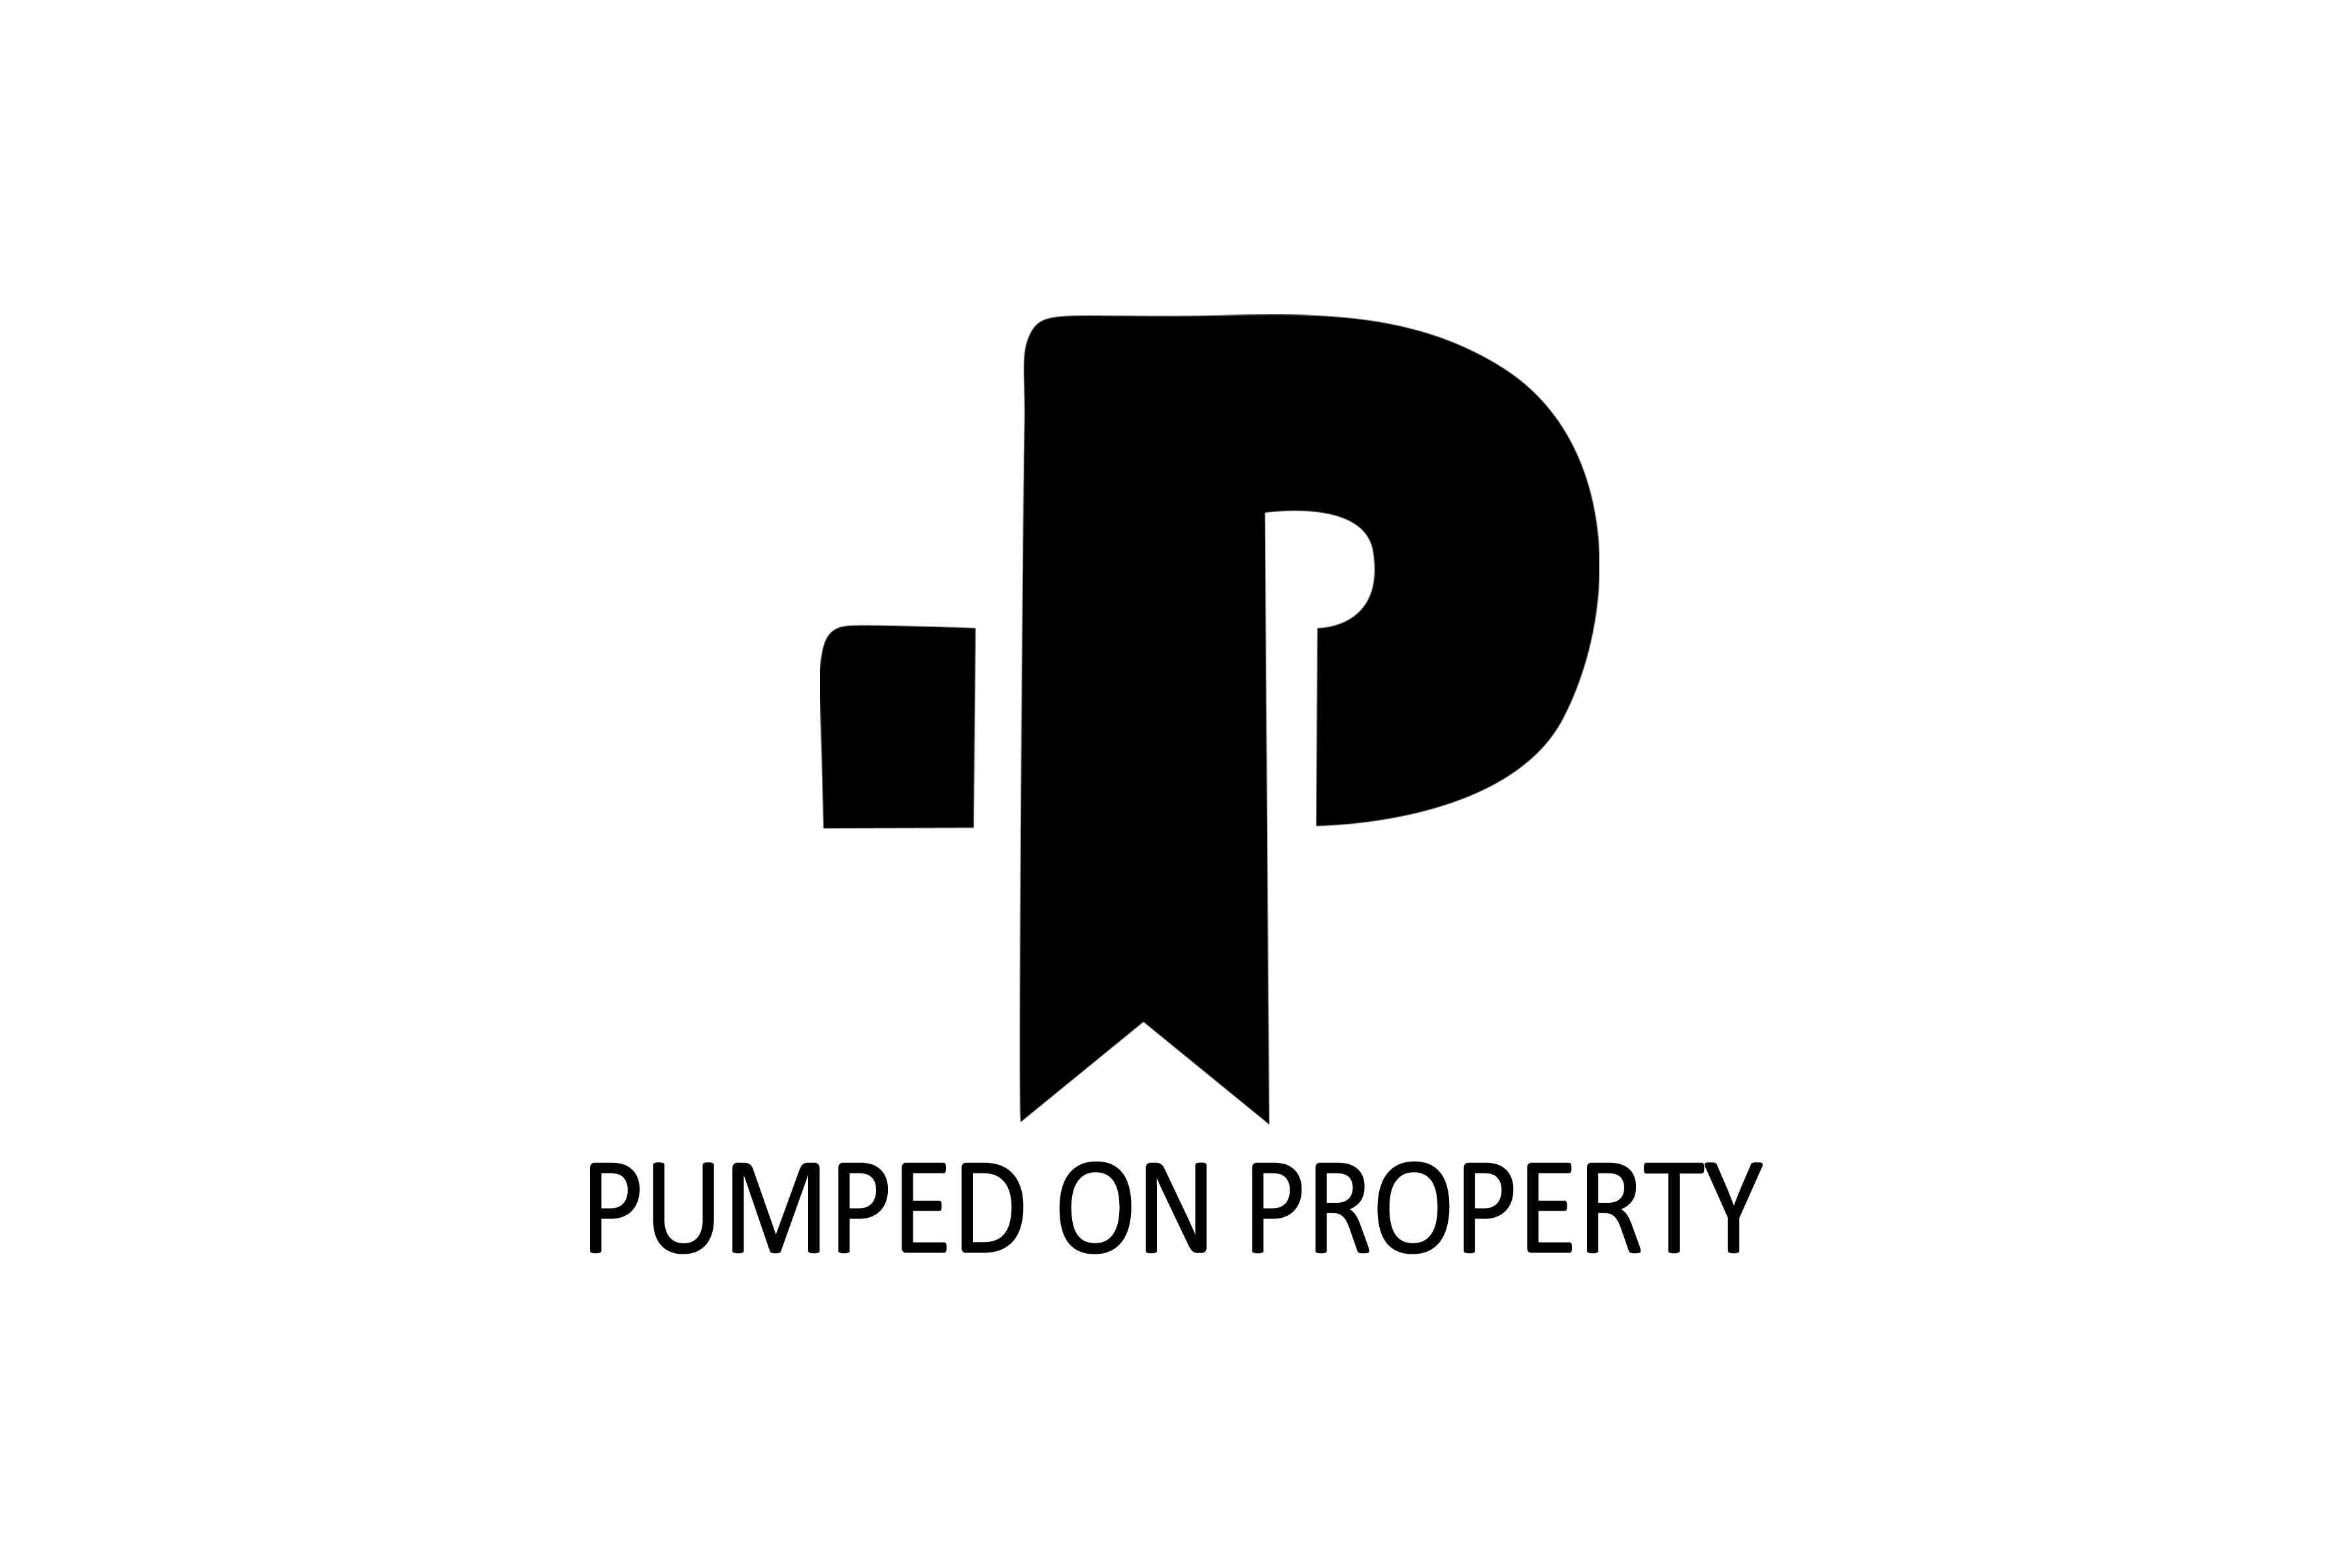 Investment Property Spreadsheet For Tax